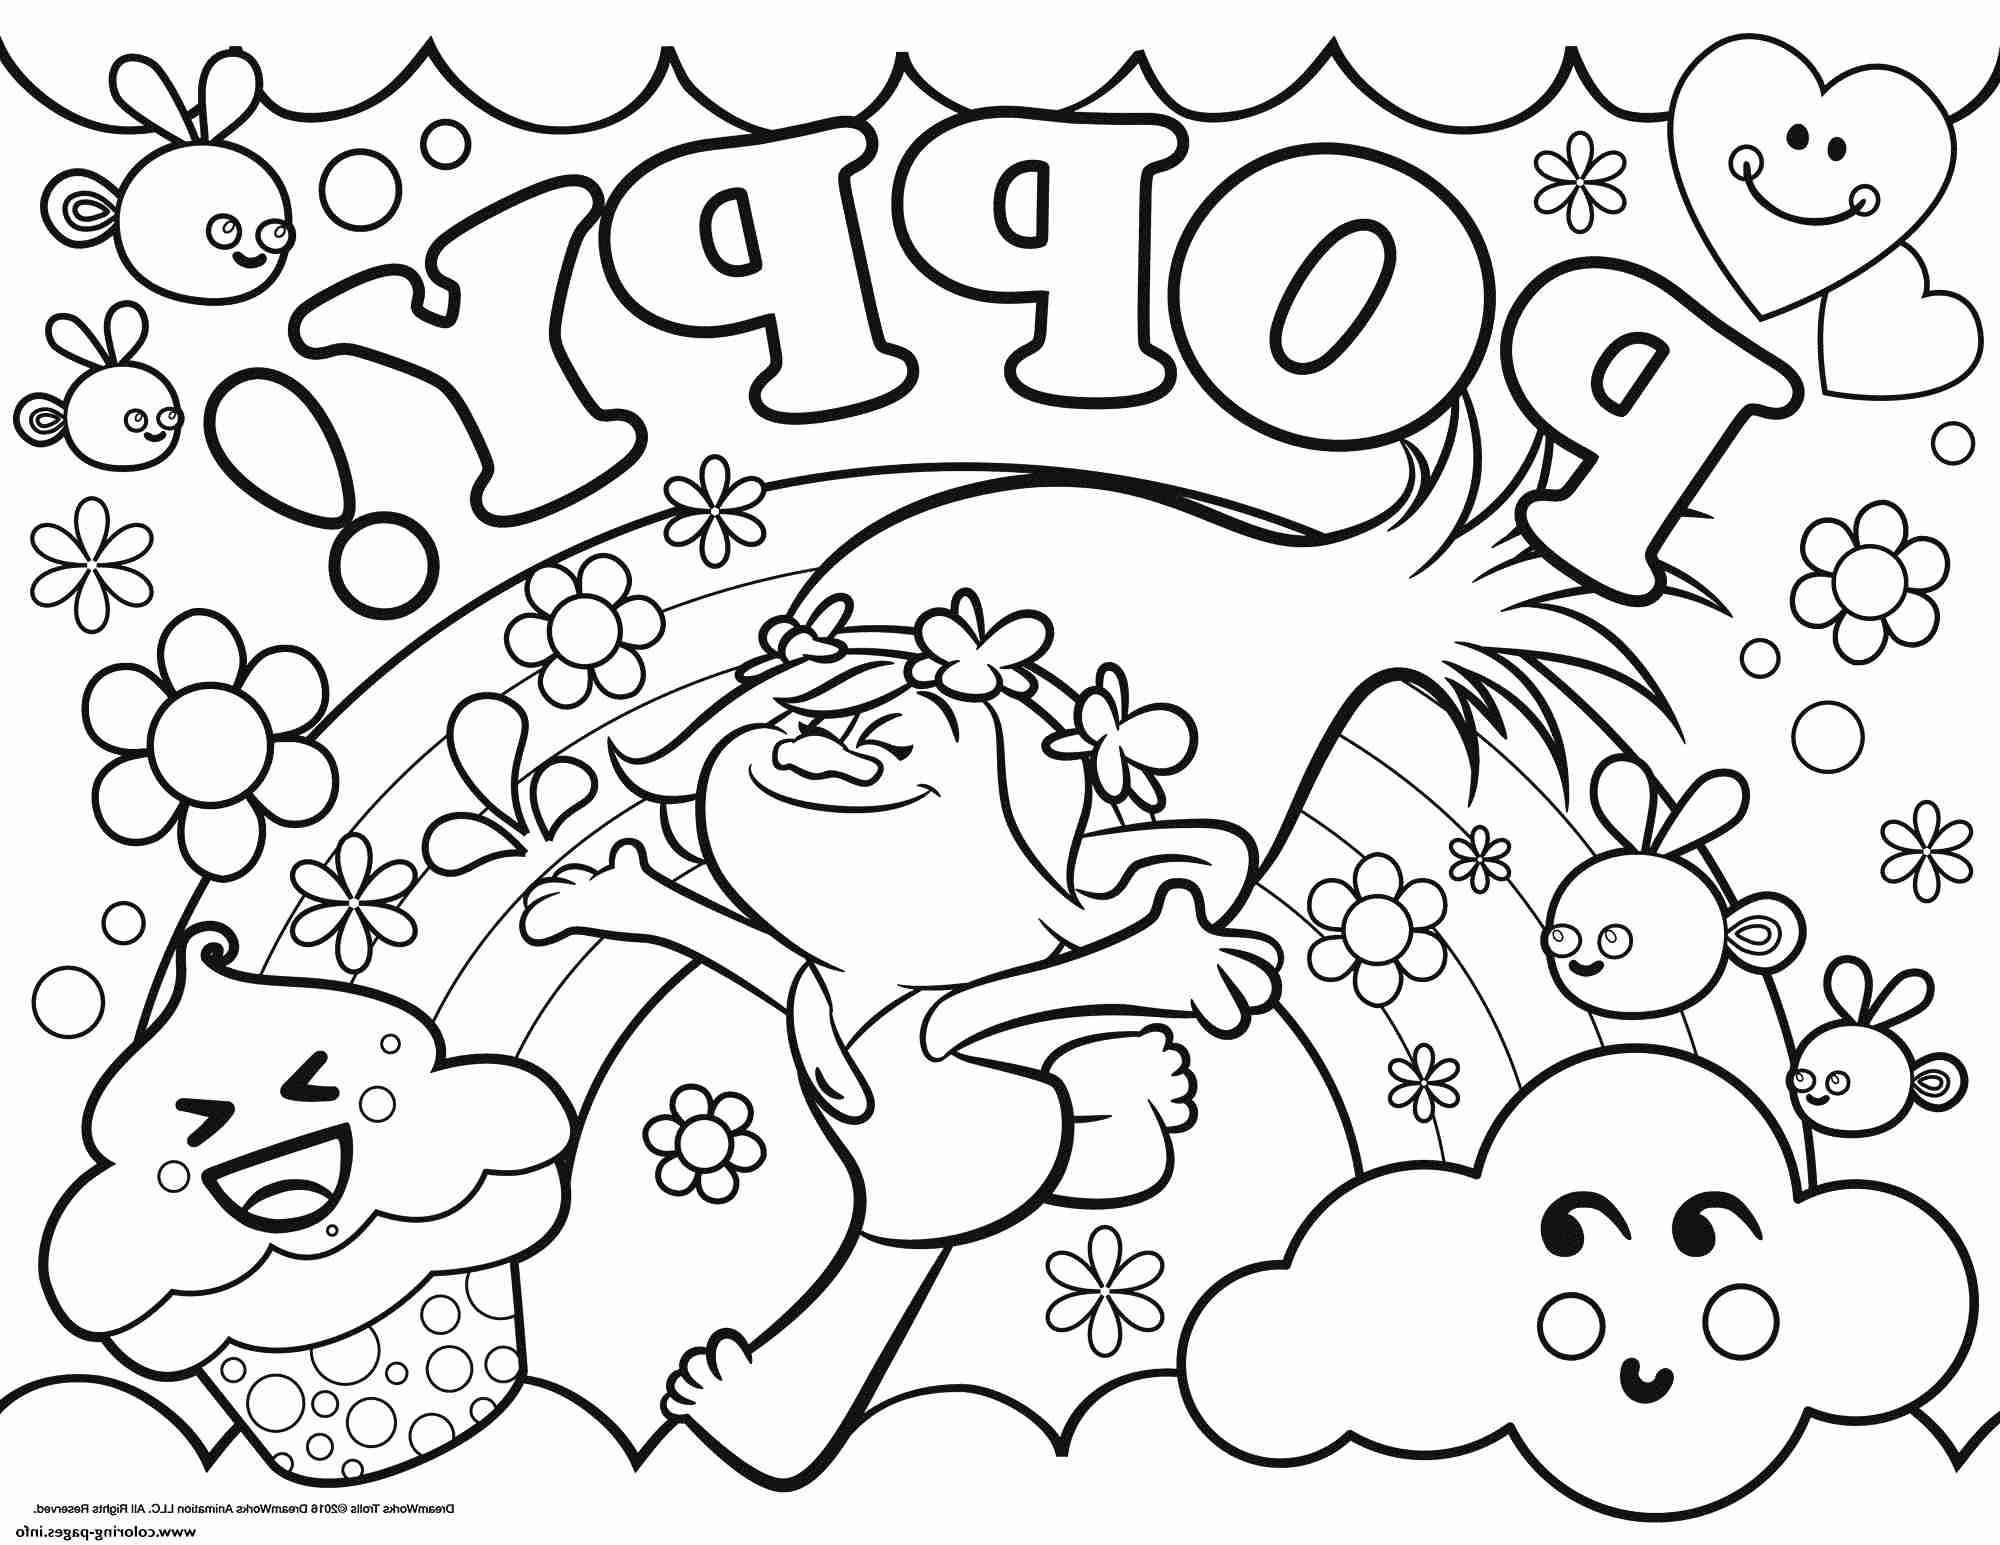 2000x1545 Trolls Movie Coloring Pages Best For Kids New Ahmedmagdy Me Bright